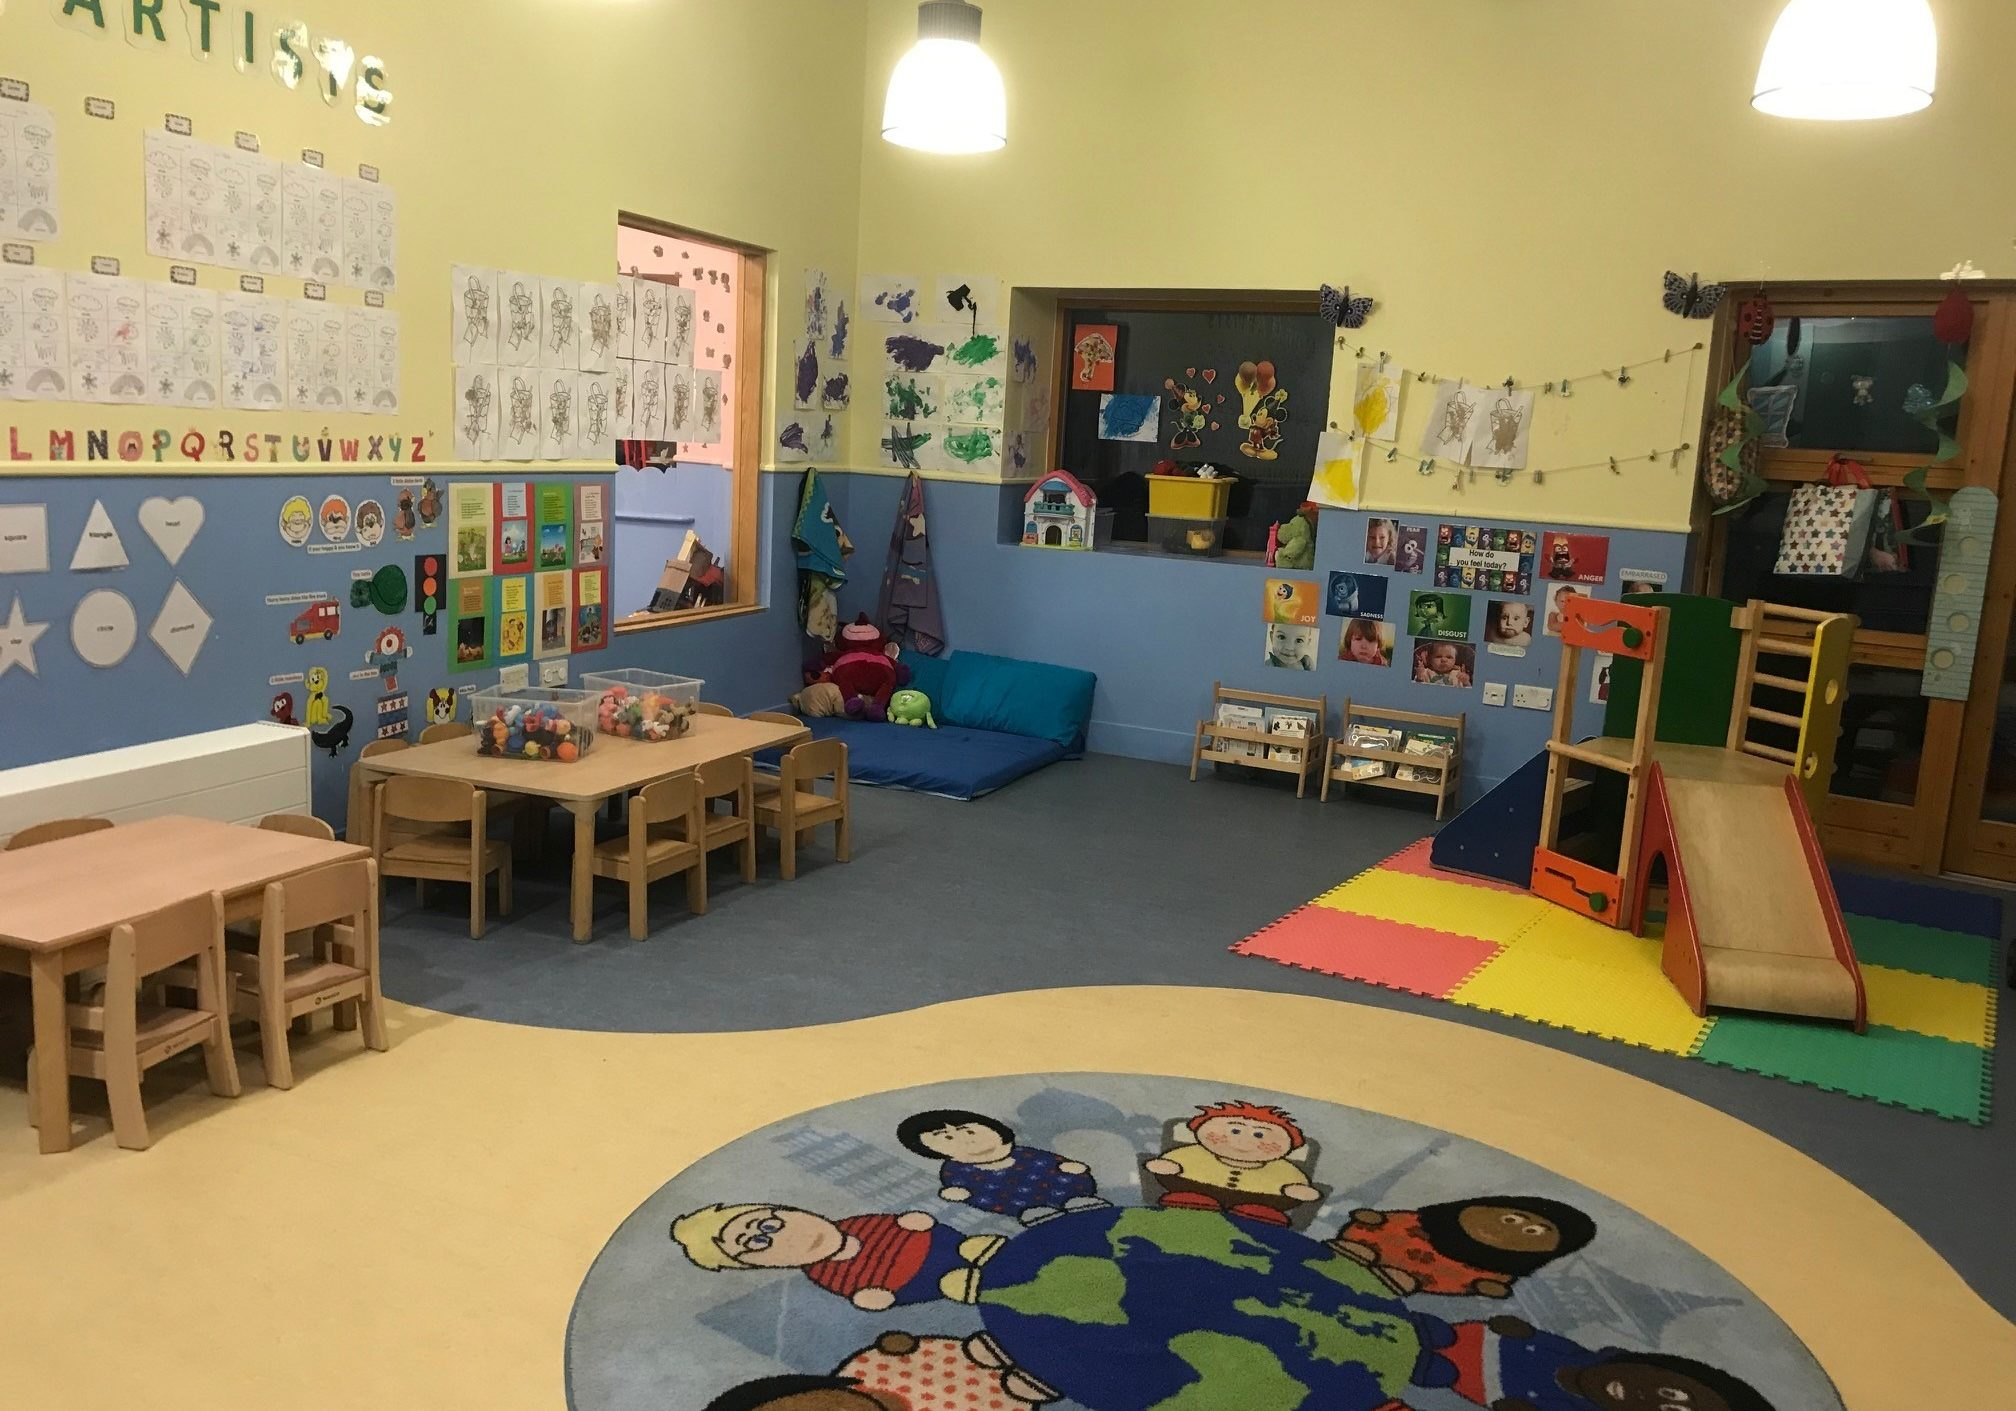 009 Playgroup Room